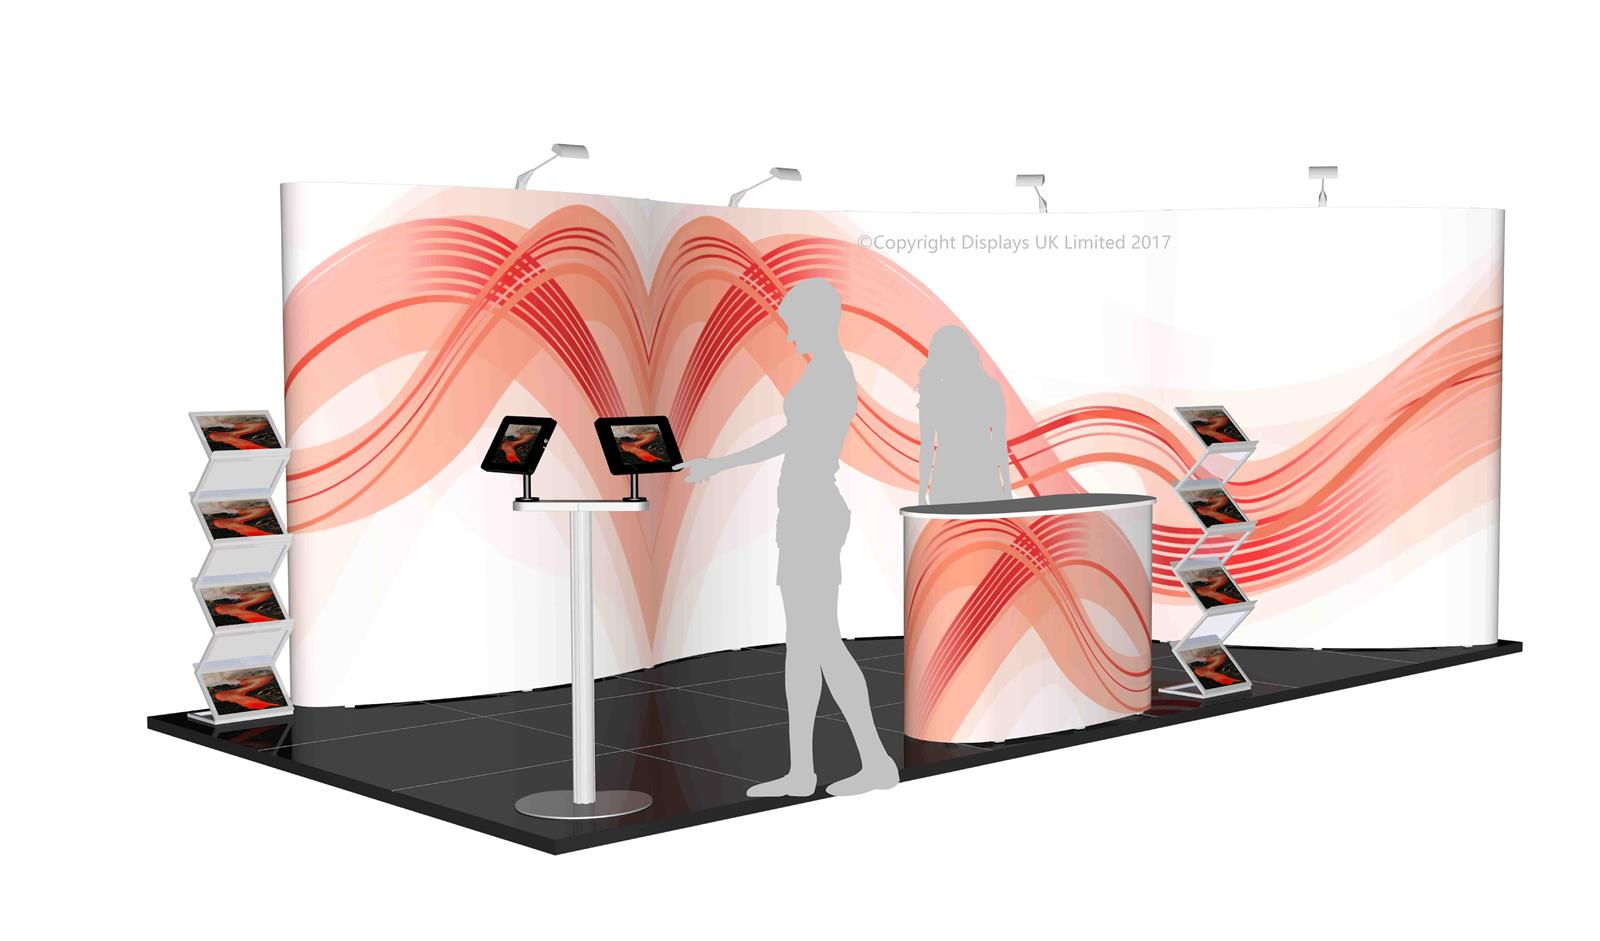 3m x 6m Linked Pop Up Exhibition Stand - Kit 35 - P6x3-2aH